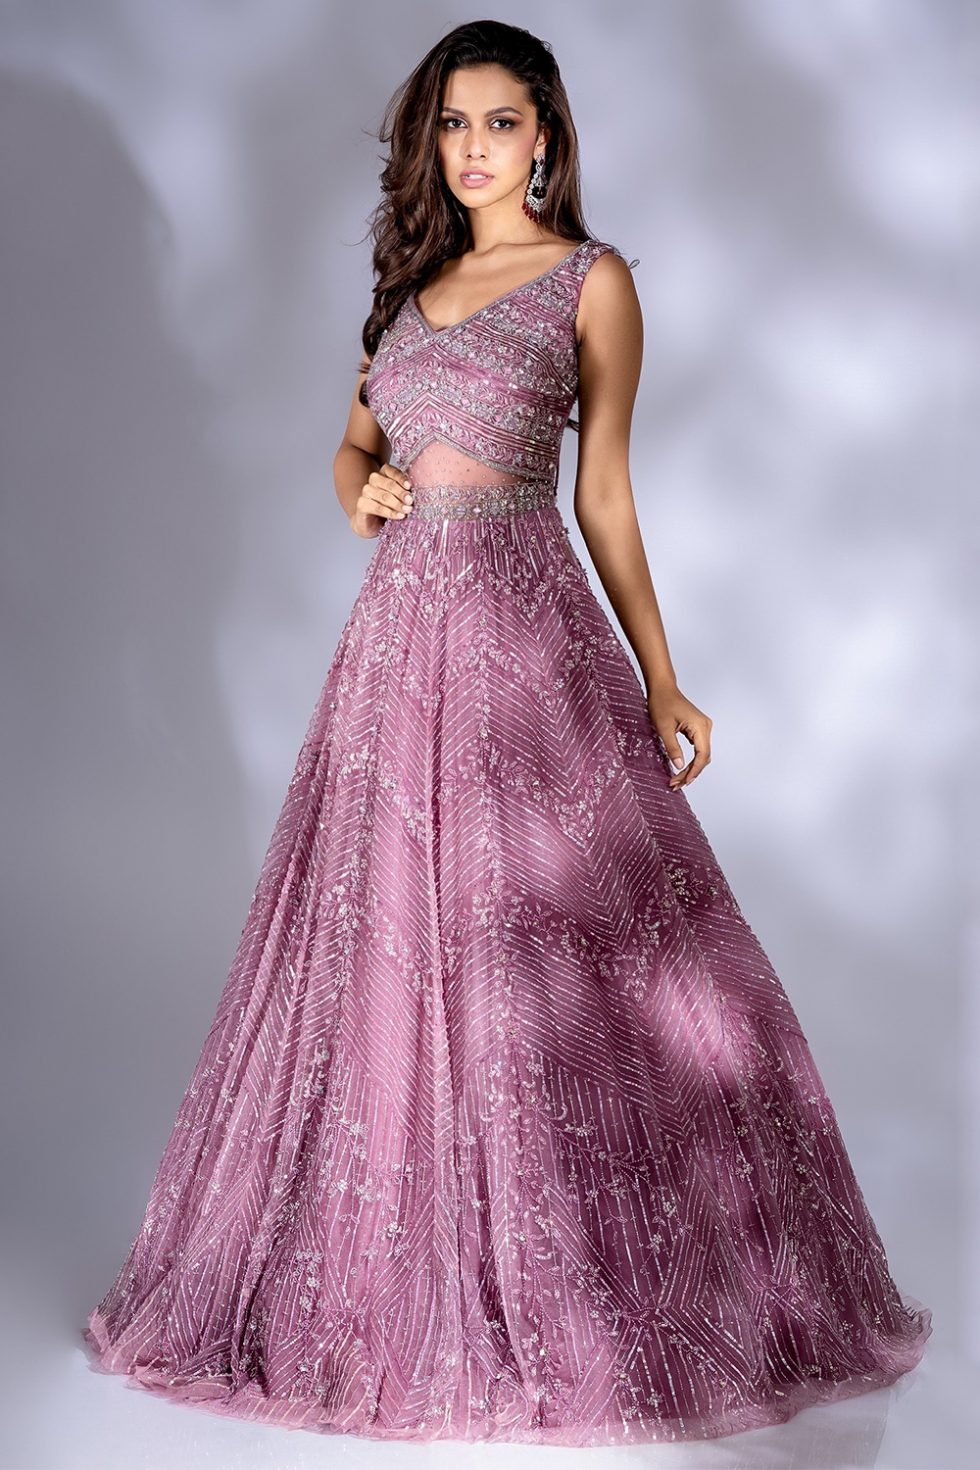 Rose purple shimmery tulle gown with self coloured and silver hand embroidery and a cut out detail.